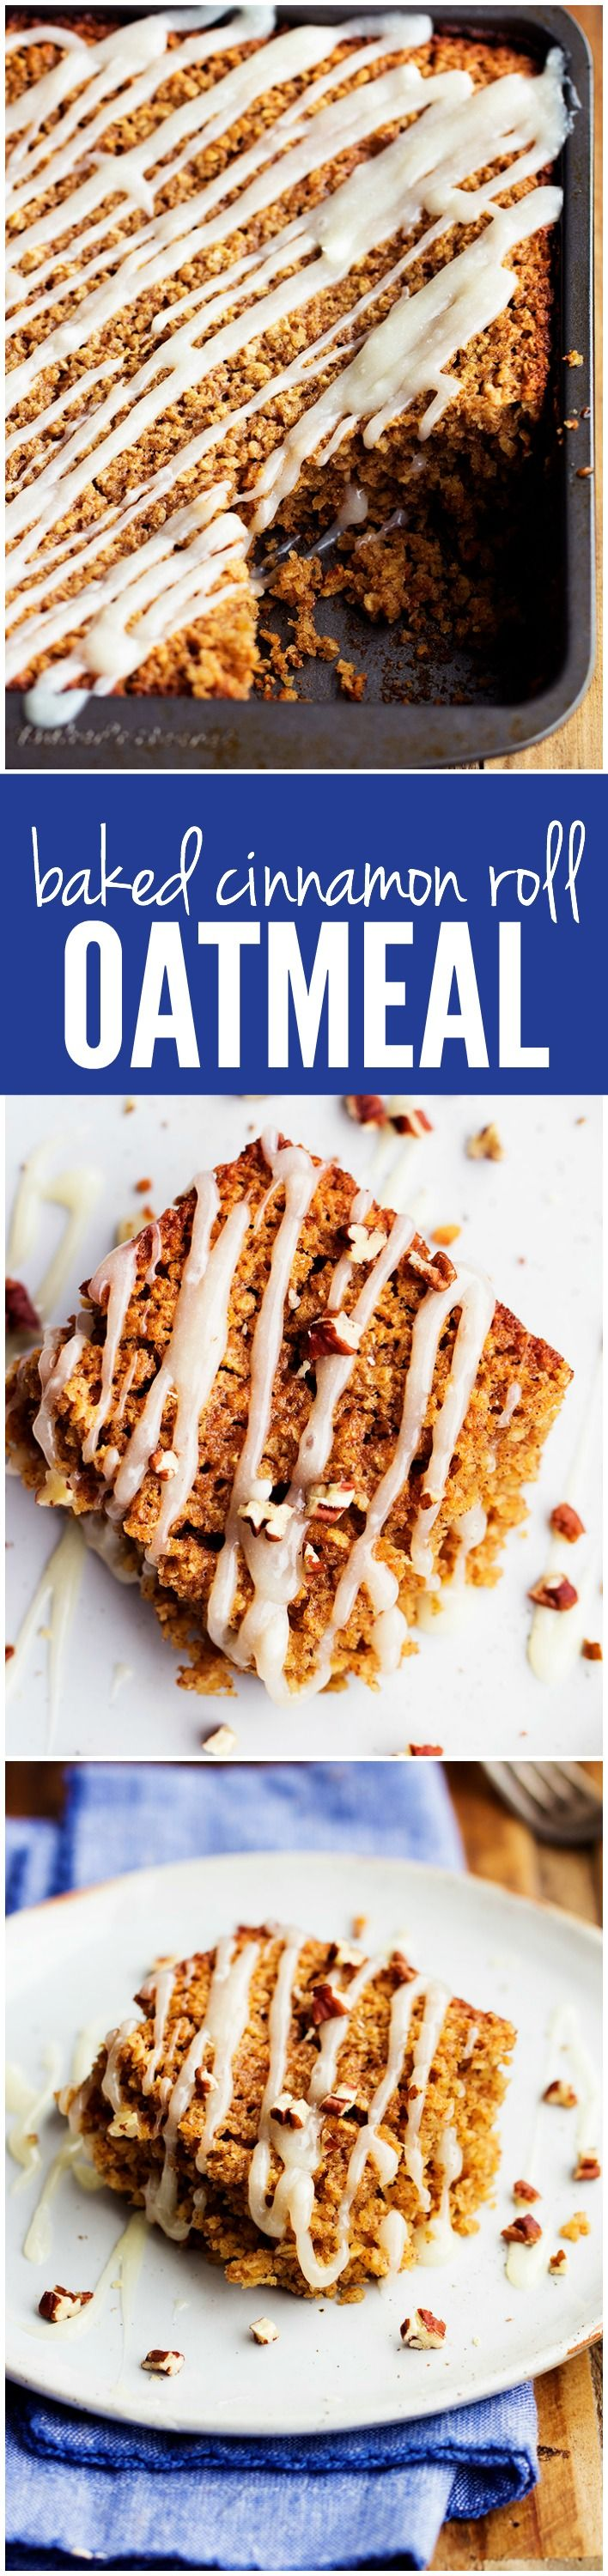 This Baked Cinnamon Roll Oatmeal will be one of the best breakfasts you ever make! It is quick and easy and has all of the delicious flavors of a cinnamon roll!